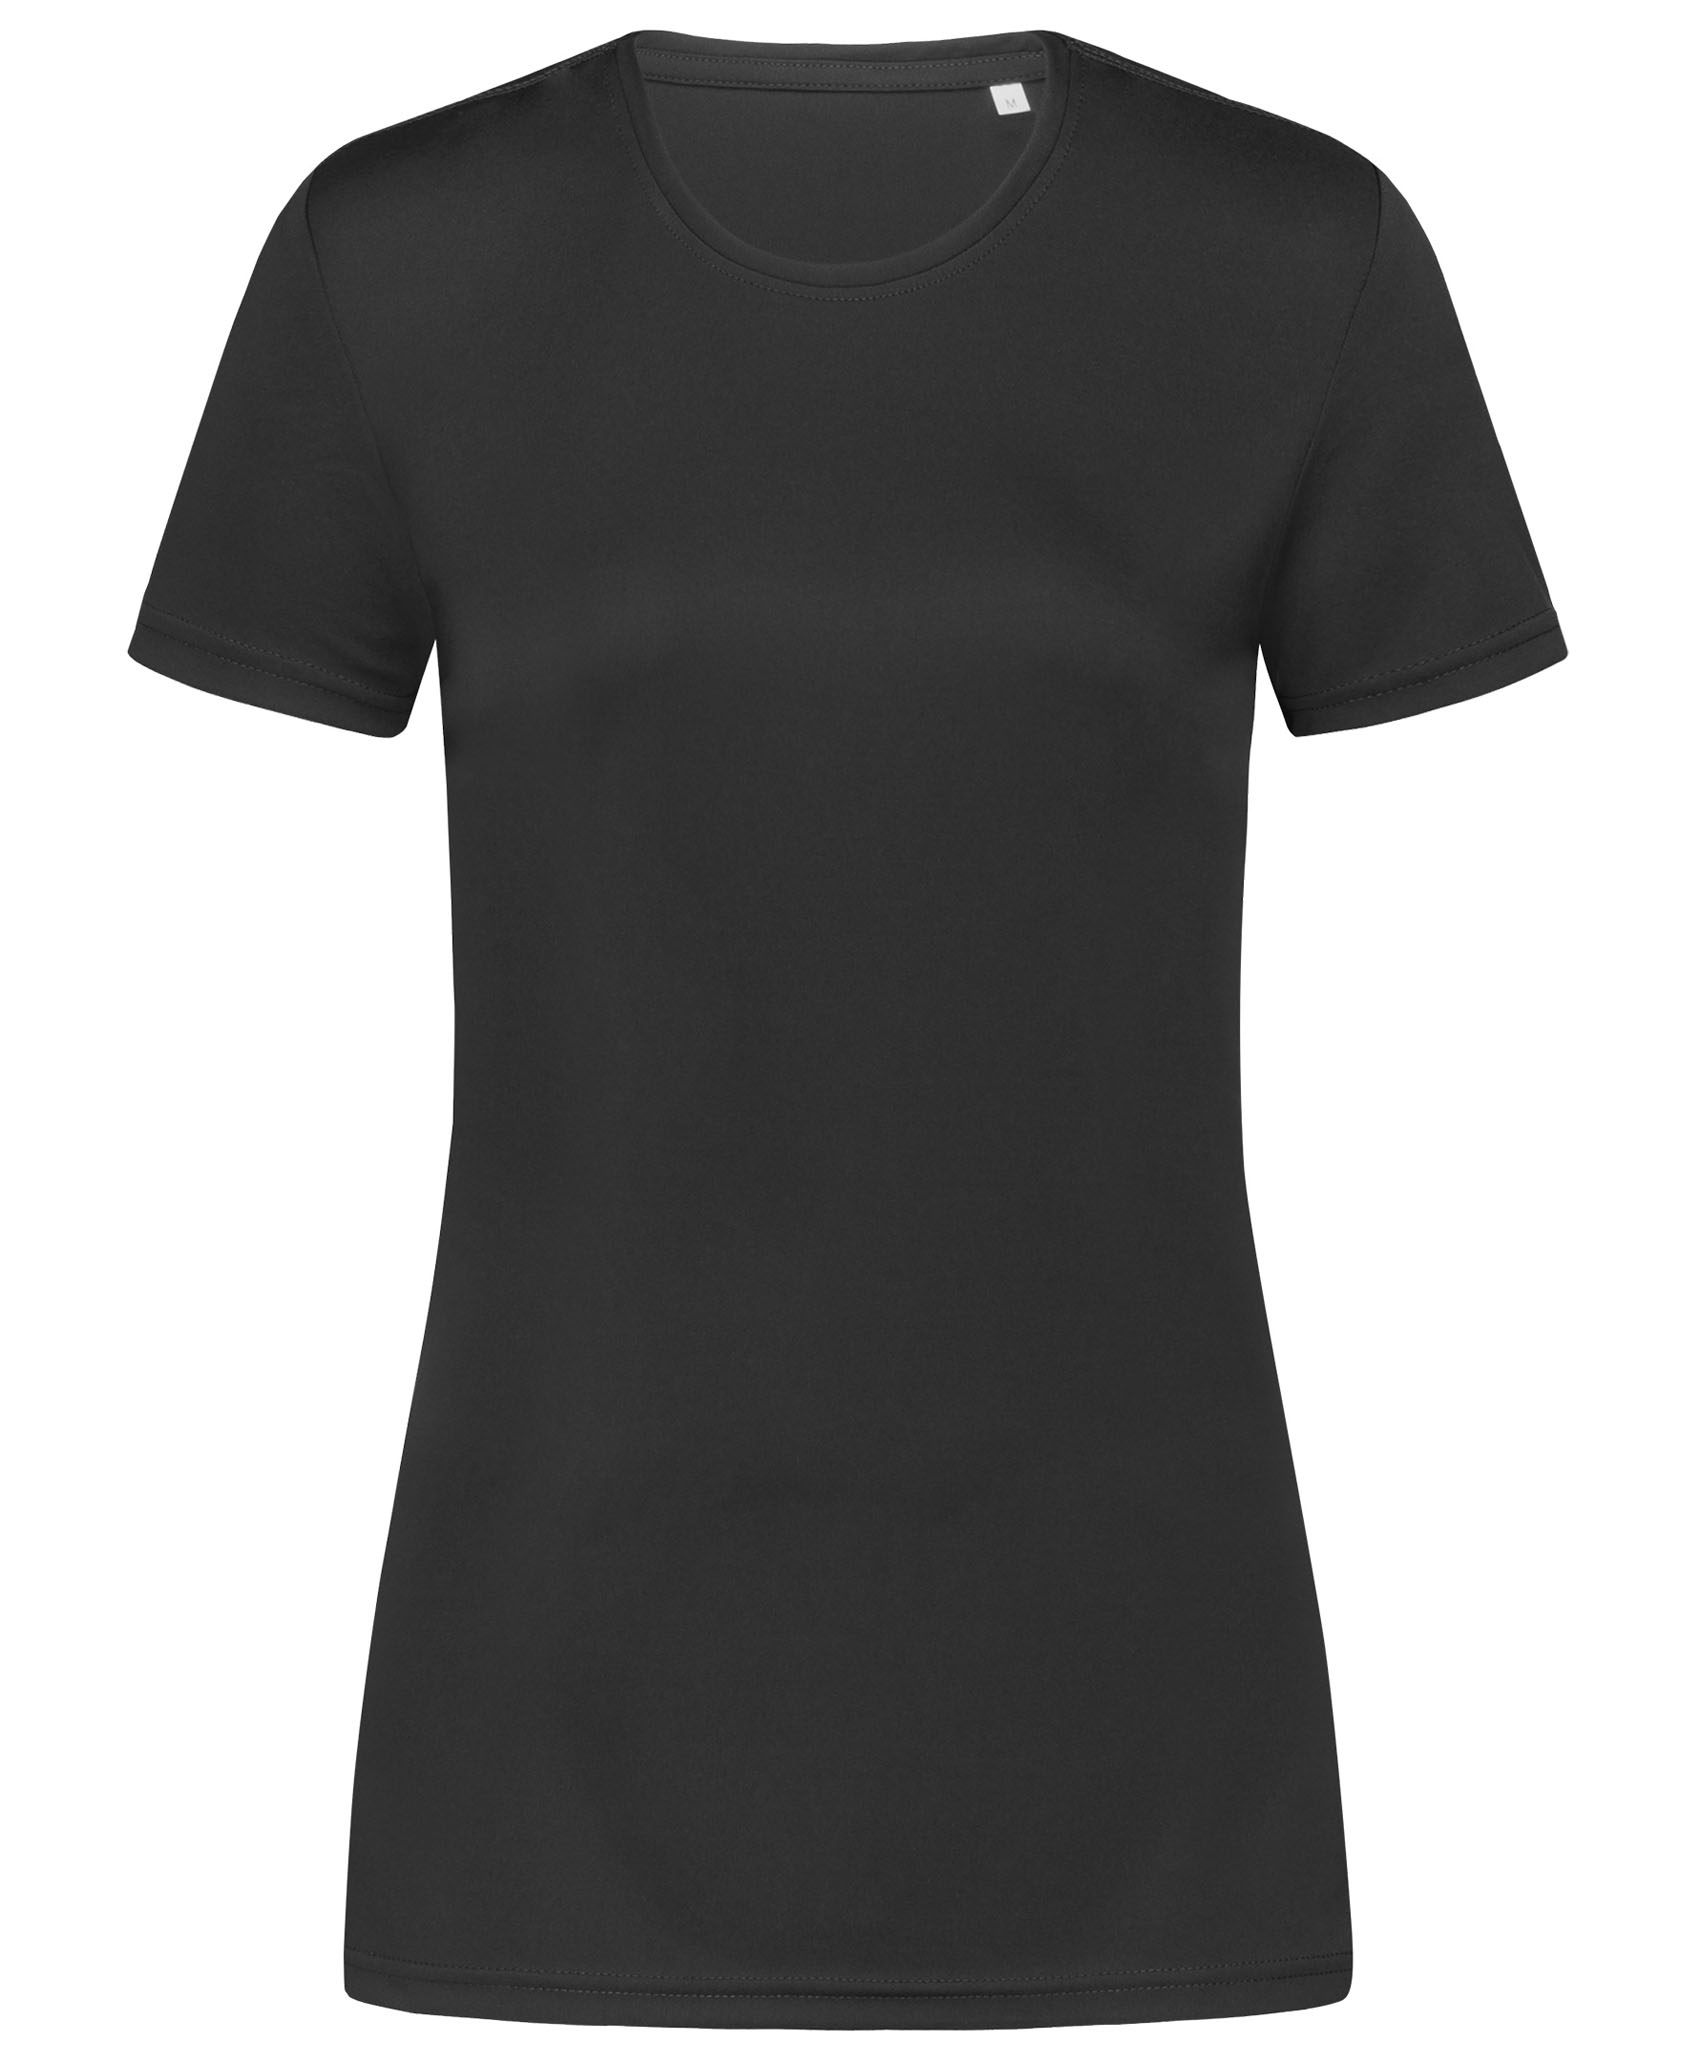 Stedman T-shirt Interlock ActiveDry for her